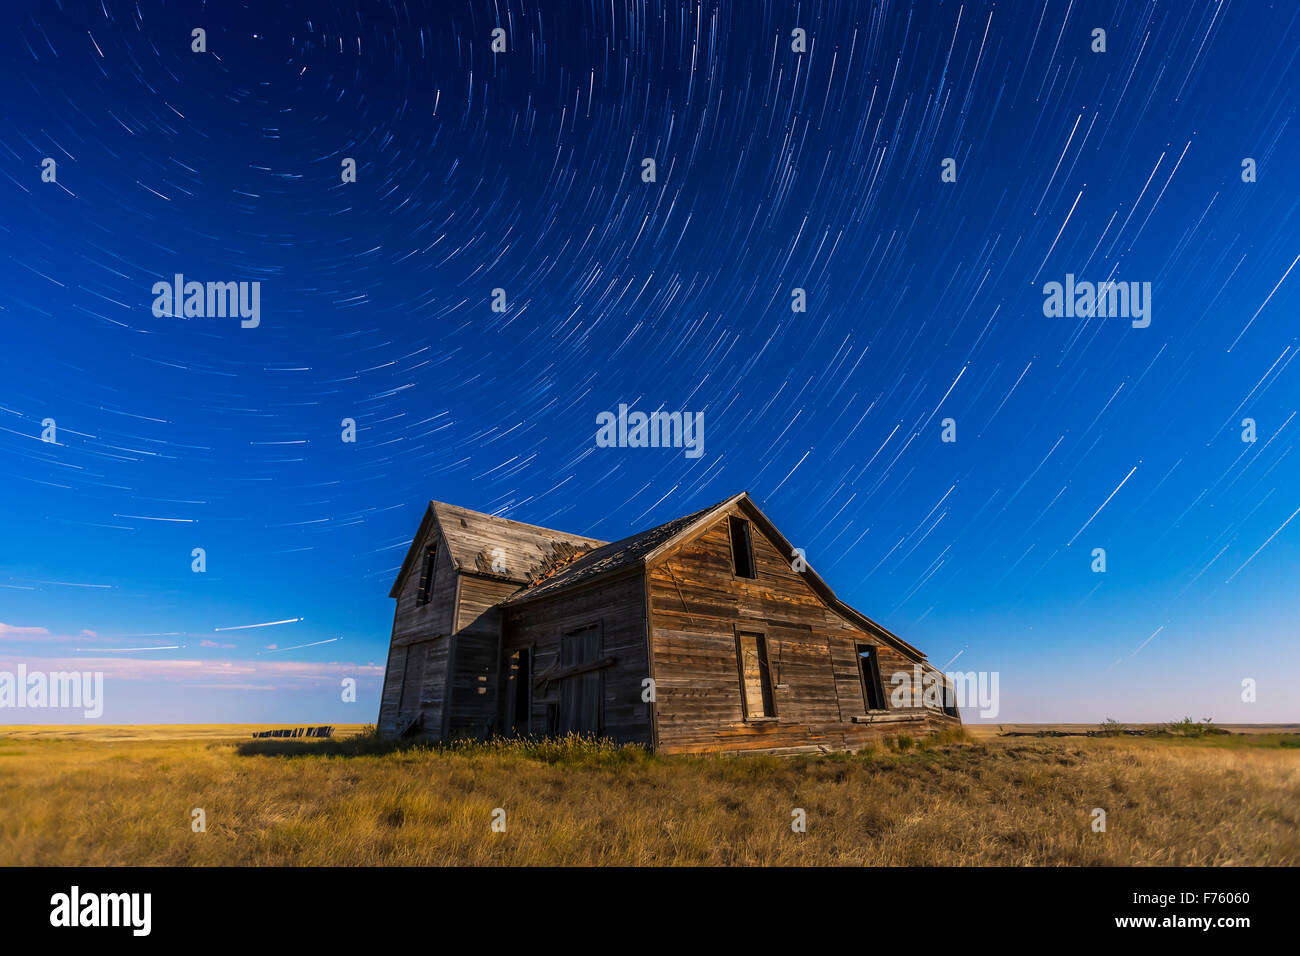 Circumpolar star trails circling above an old rustic and abandoned house near Bow Island, Alberta, with illumination - Stock Image